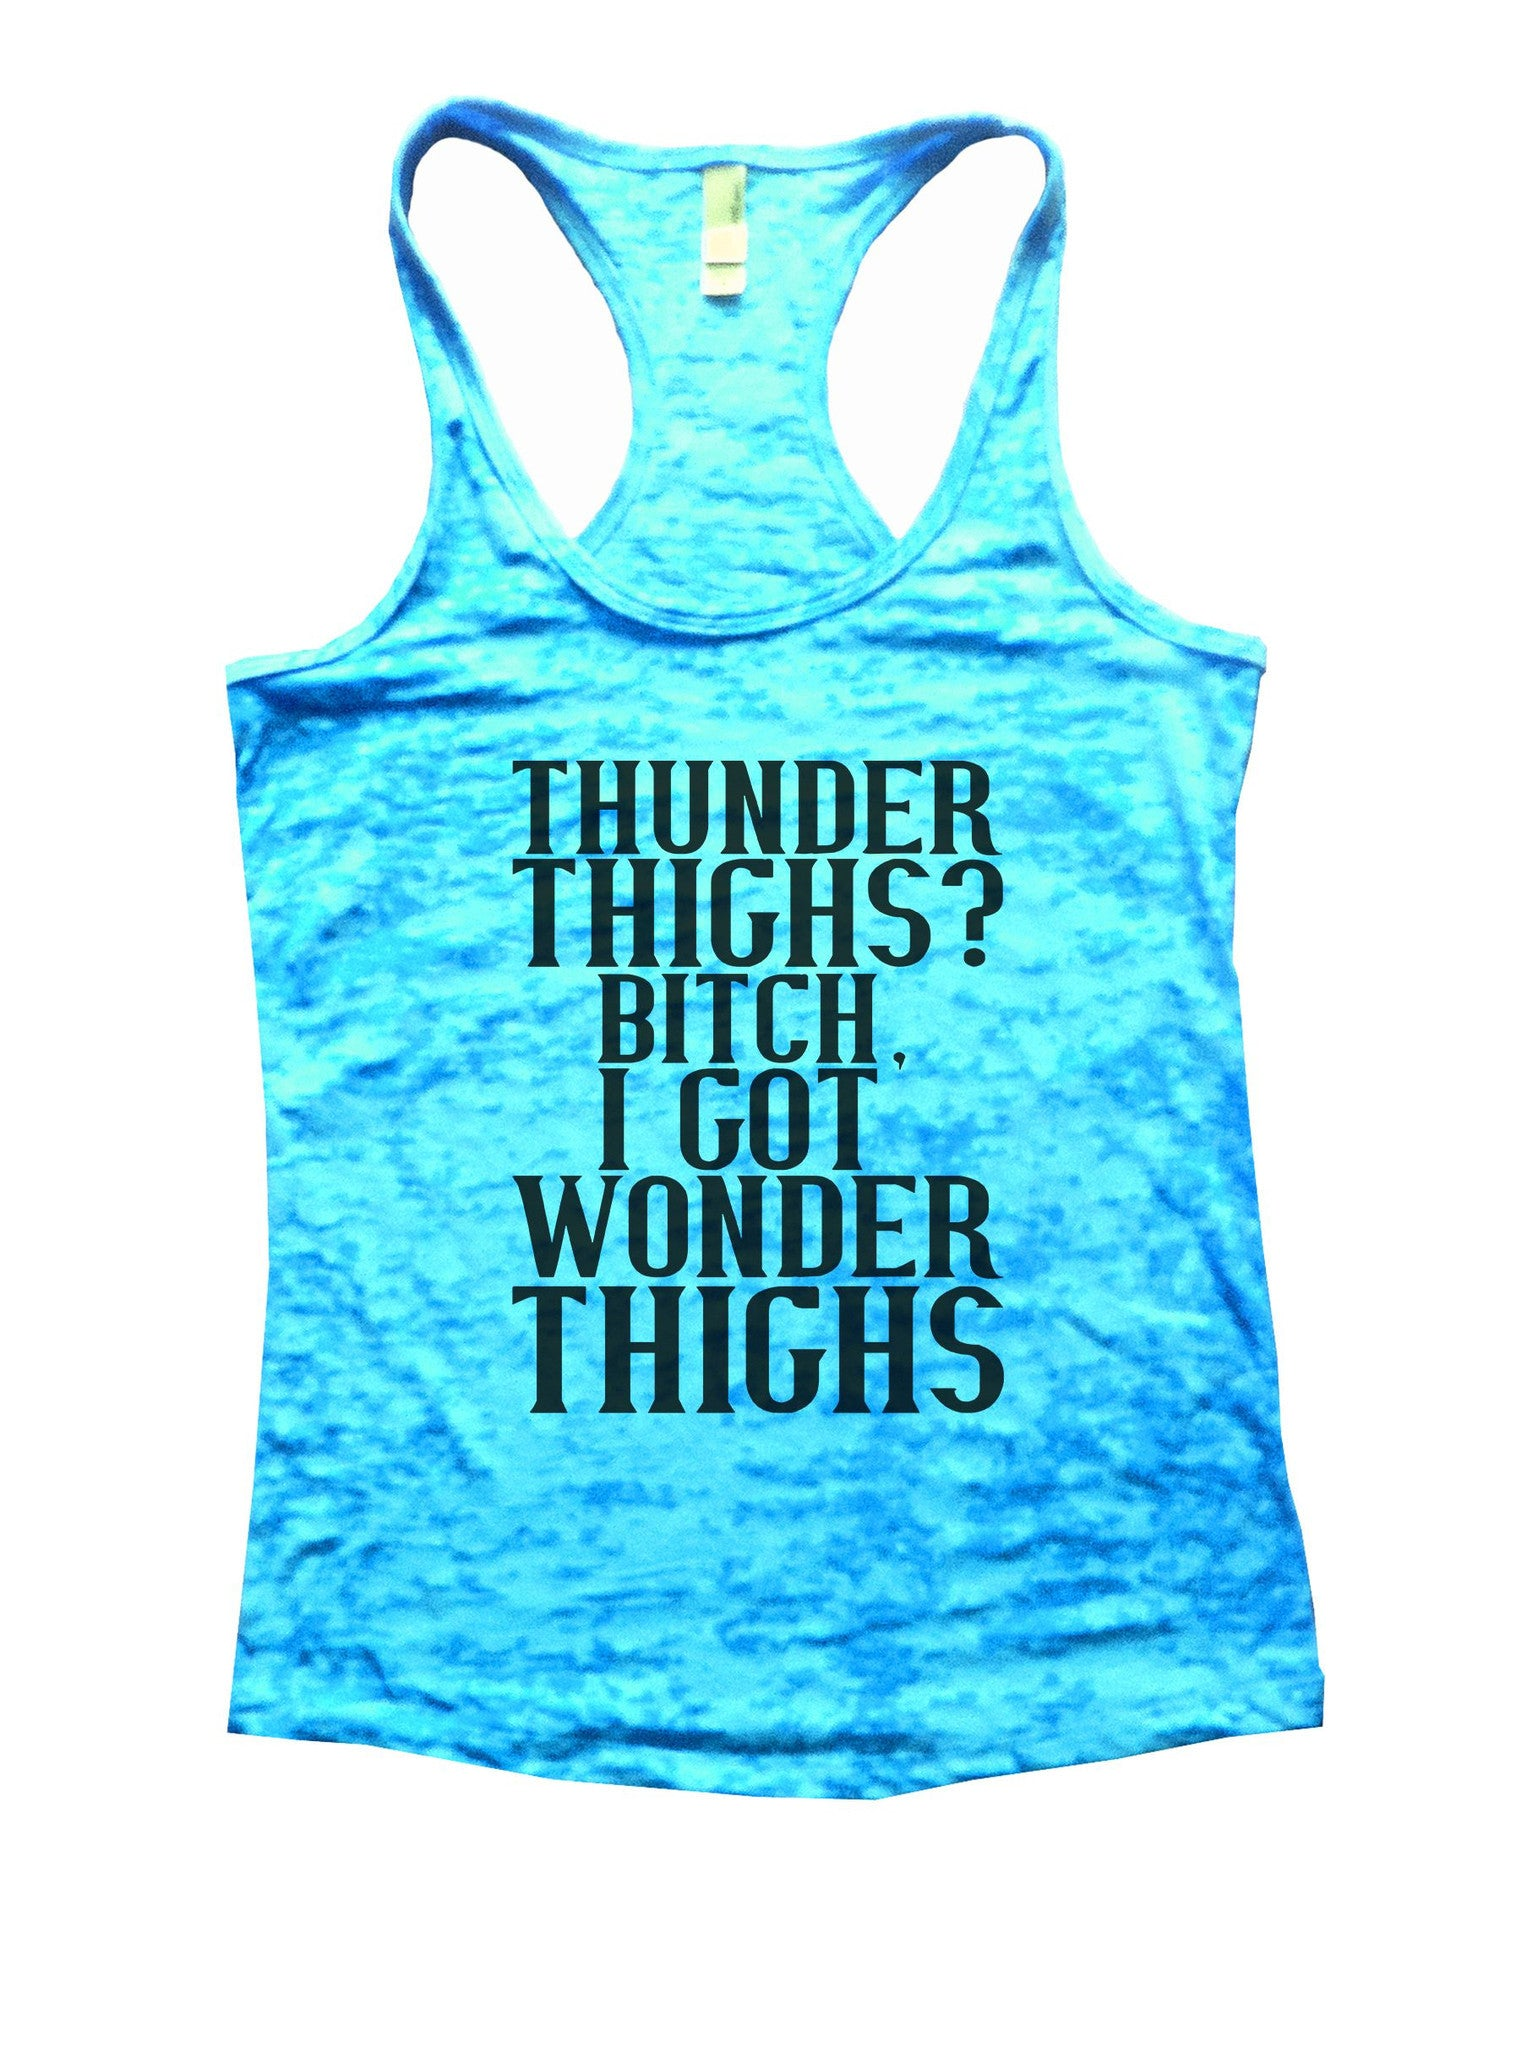 Thunder Thighs? Bitch, I Got Wonder Thighs Burnout Tank Top By BurnoutTankTops.com - 849 - Funny Shirts Tank Tops Burnouts and Triblends  - 4